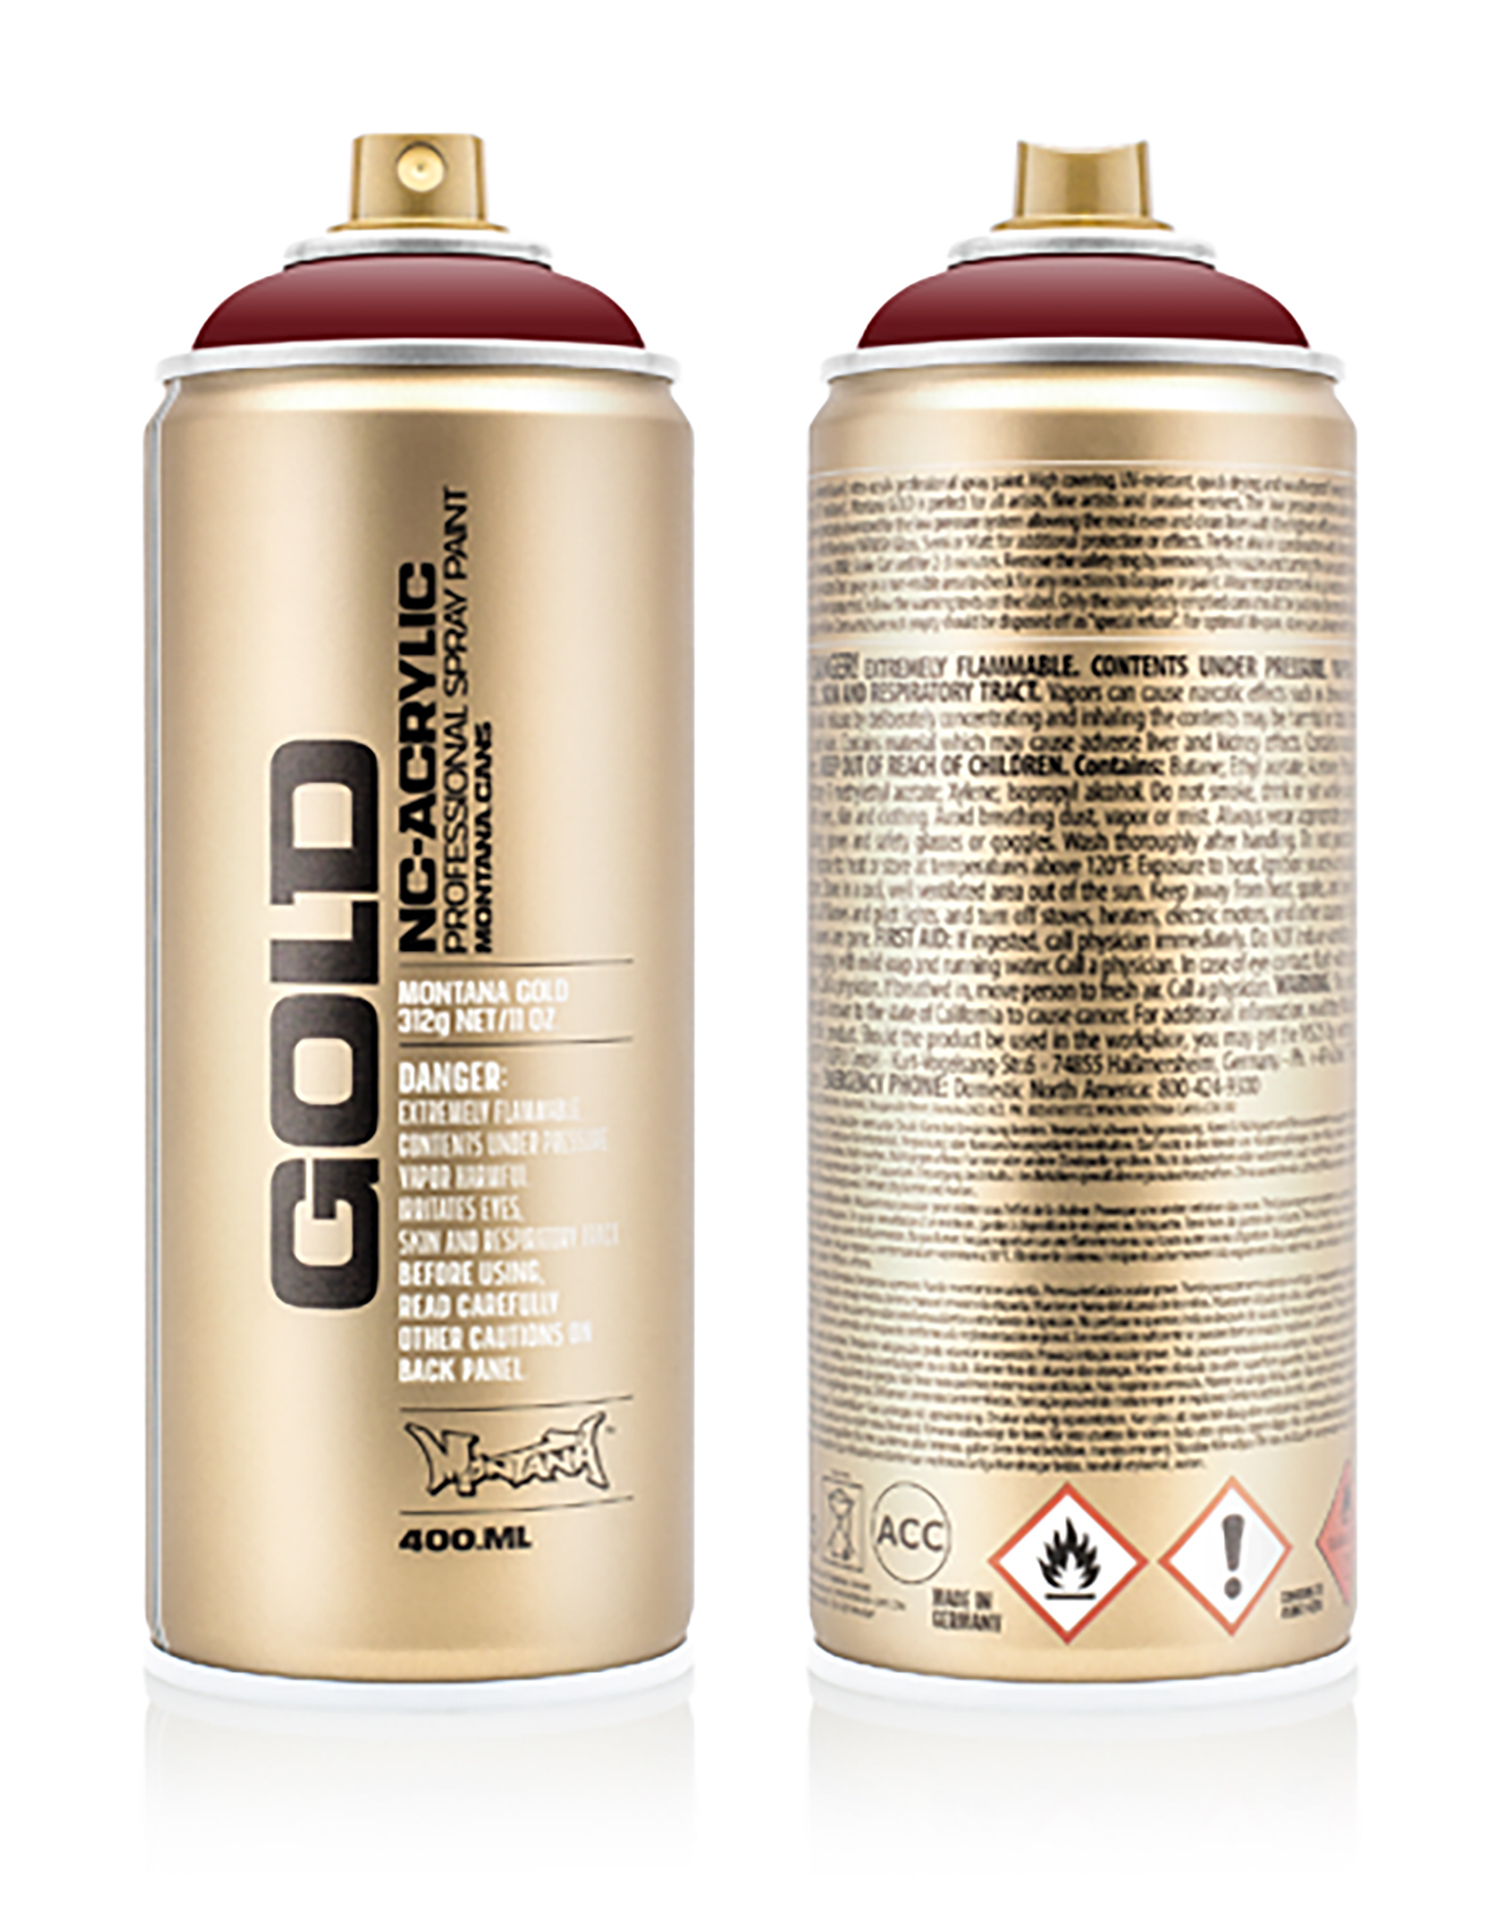 MONTANA-GOLD-SPRAY-400ML-G-3060